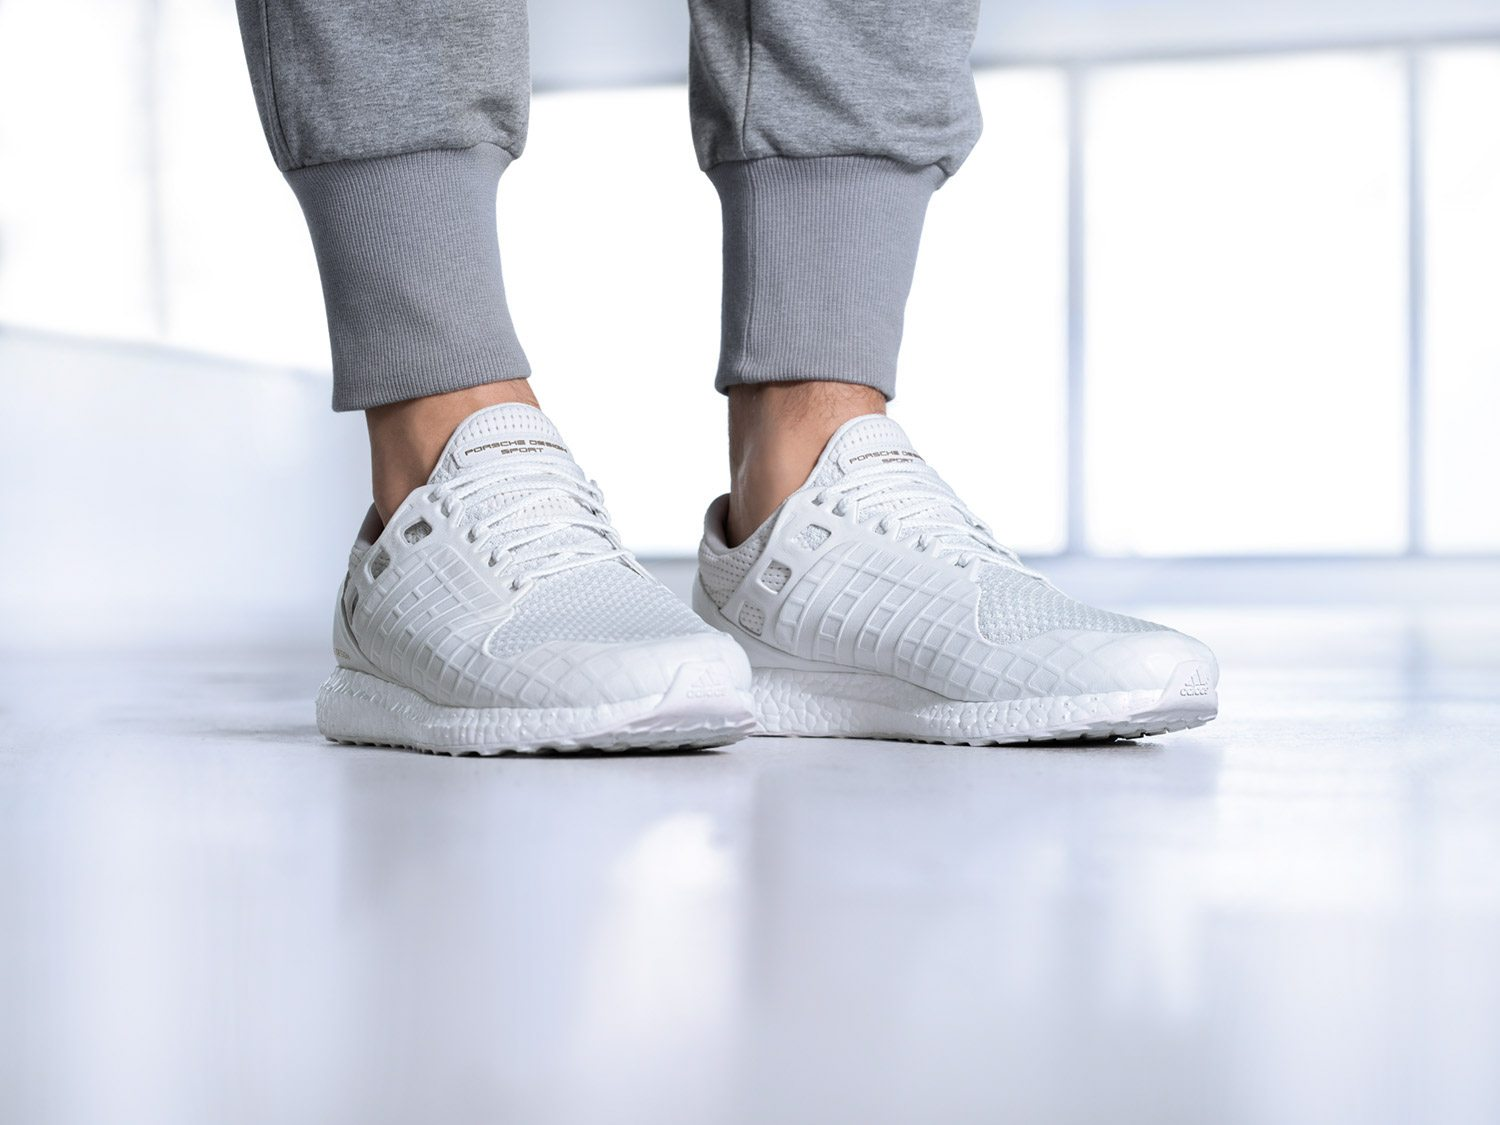 Porsche x adidas Ultra Boost All White 5